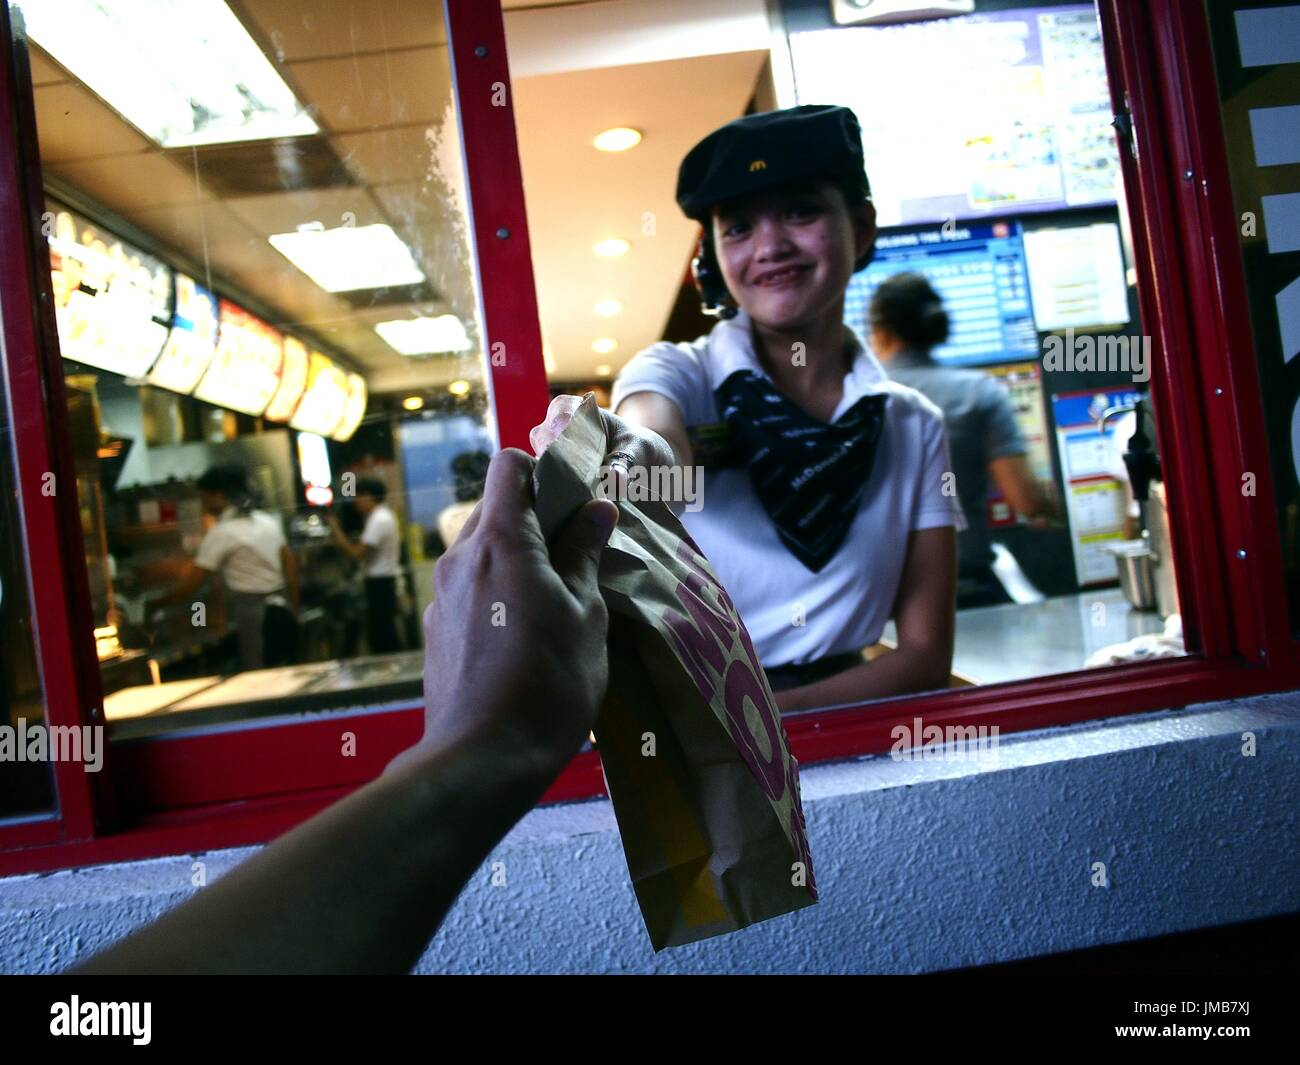 ANTIPOLO CITY, PHILIPPINES - JULY 17, 2017: A fast food chain worker gives a customer a purchased product at a drive thru. - Stock Image